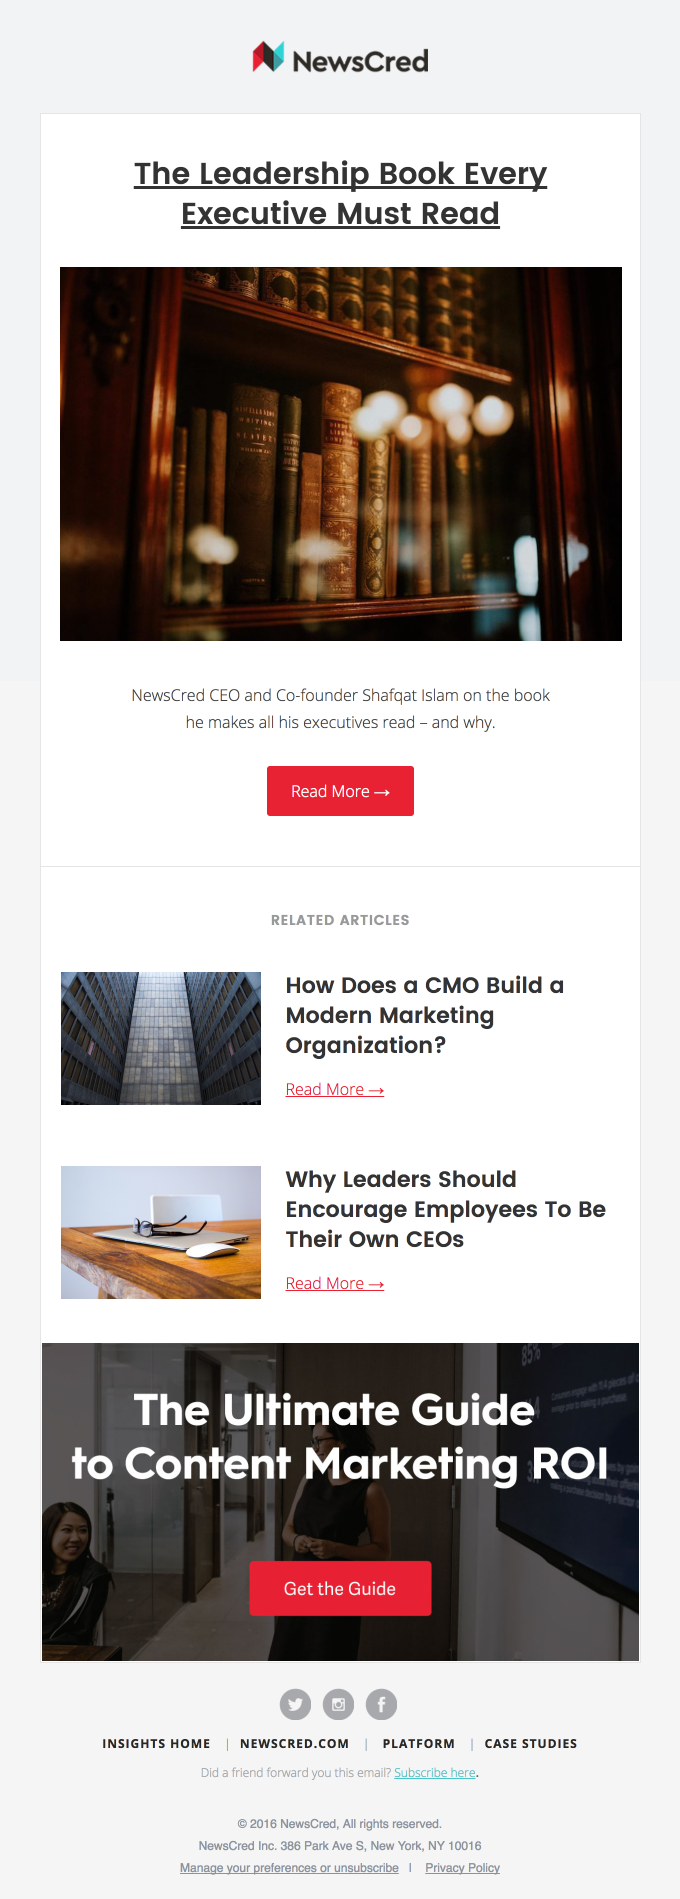 NewsCred executive email newsletter content